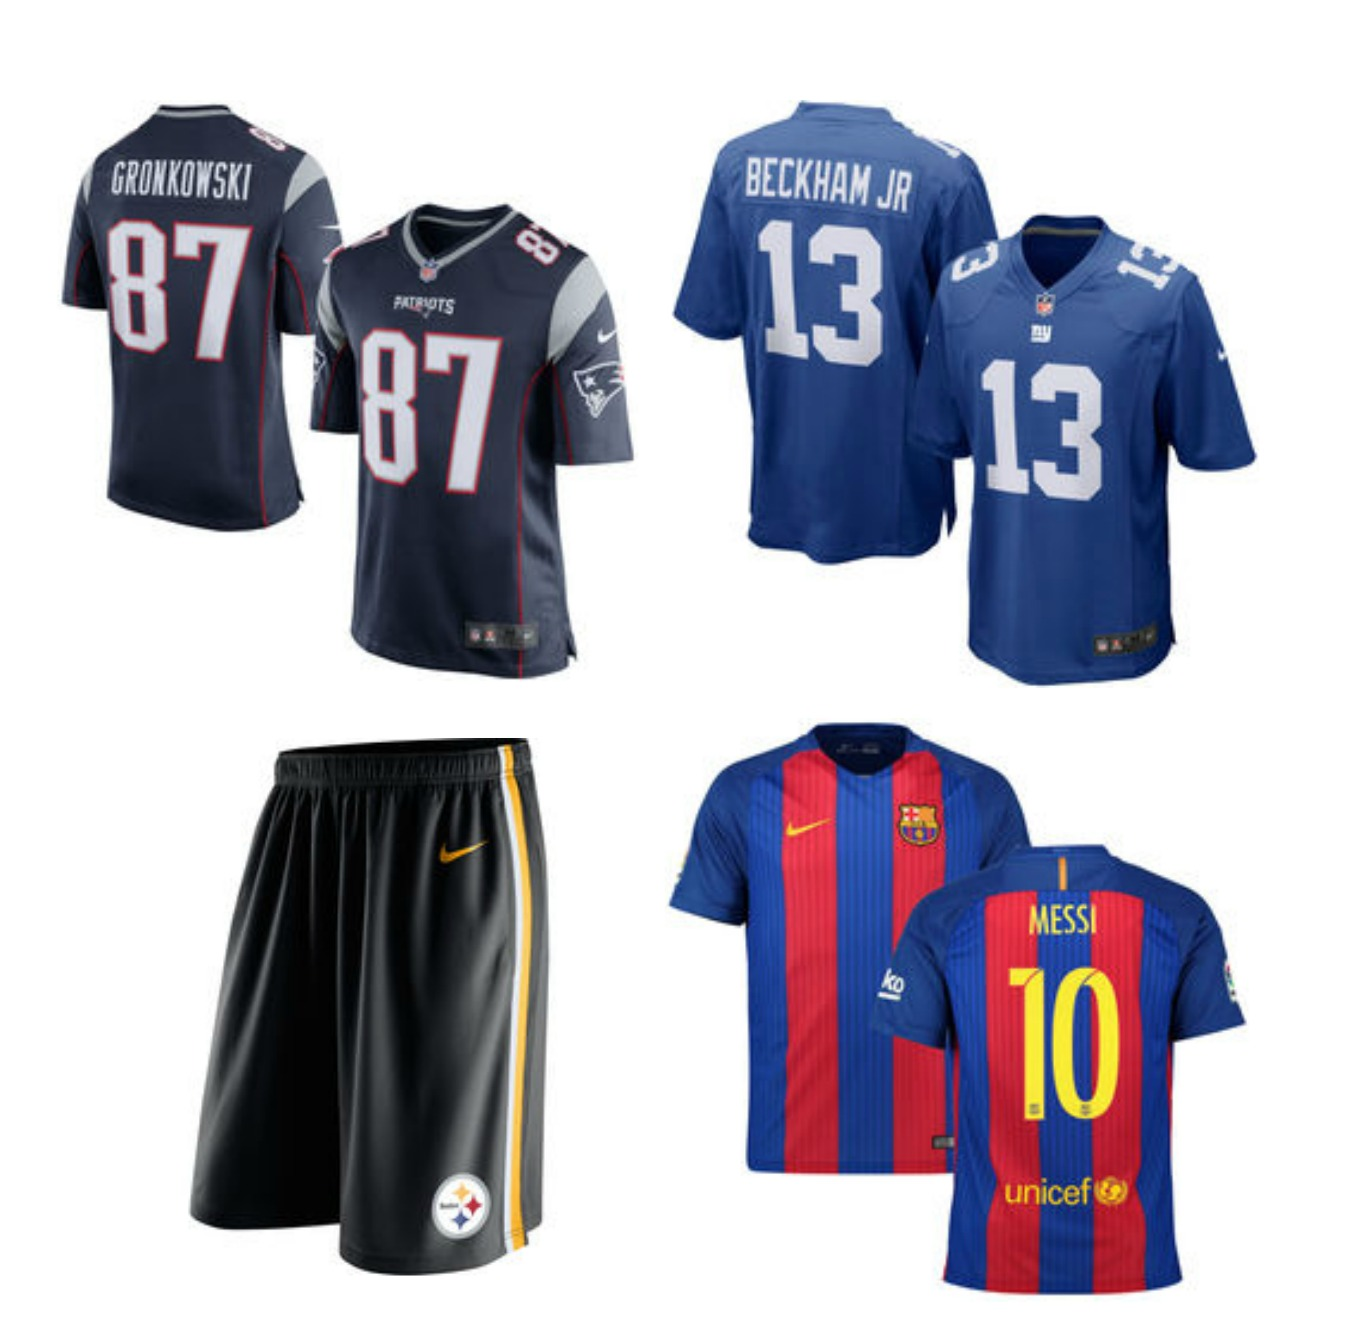 sports apparel jerseys and fan gear at fanaticscom - HD 1349×1336